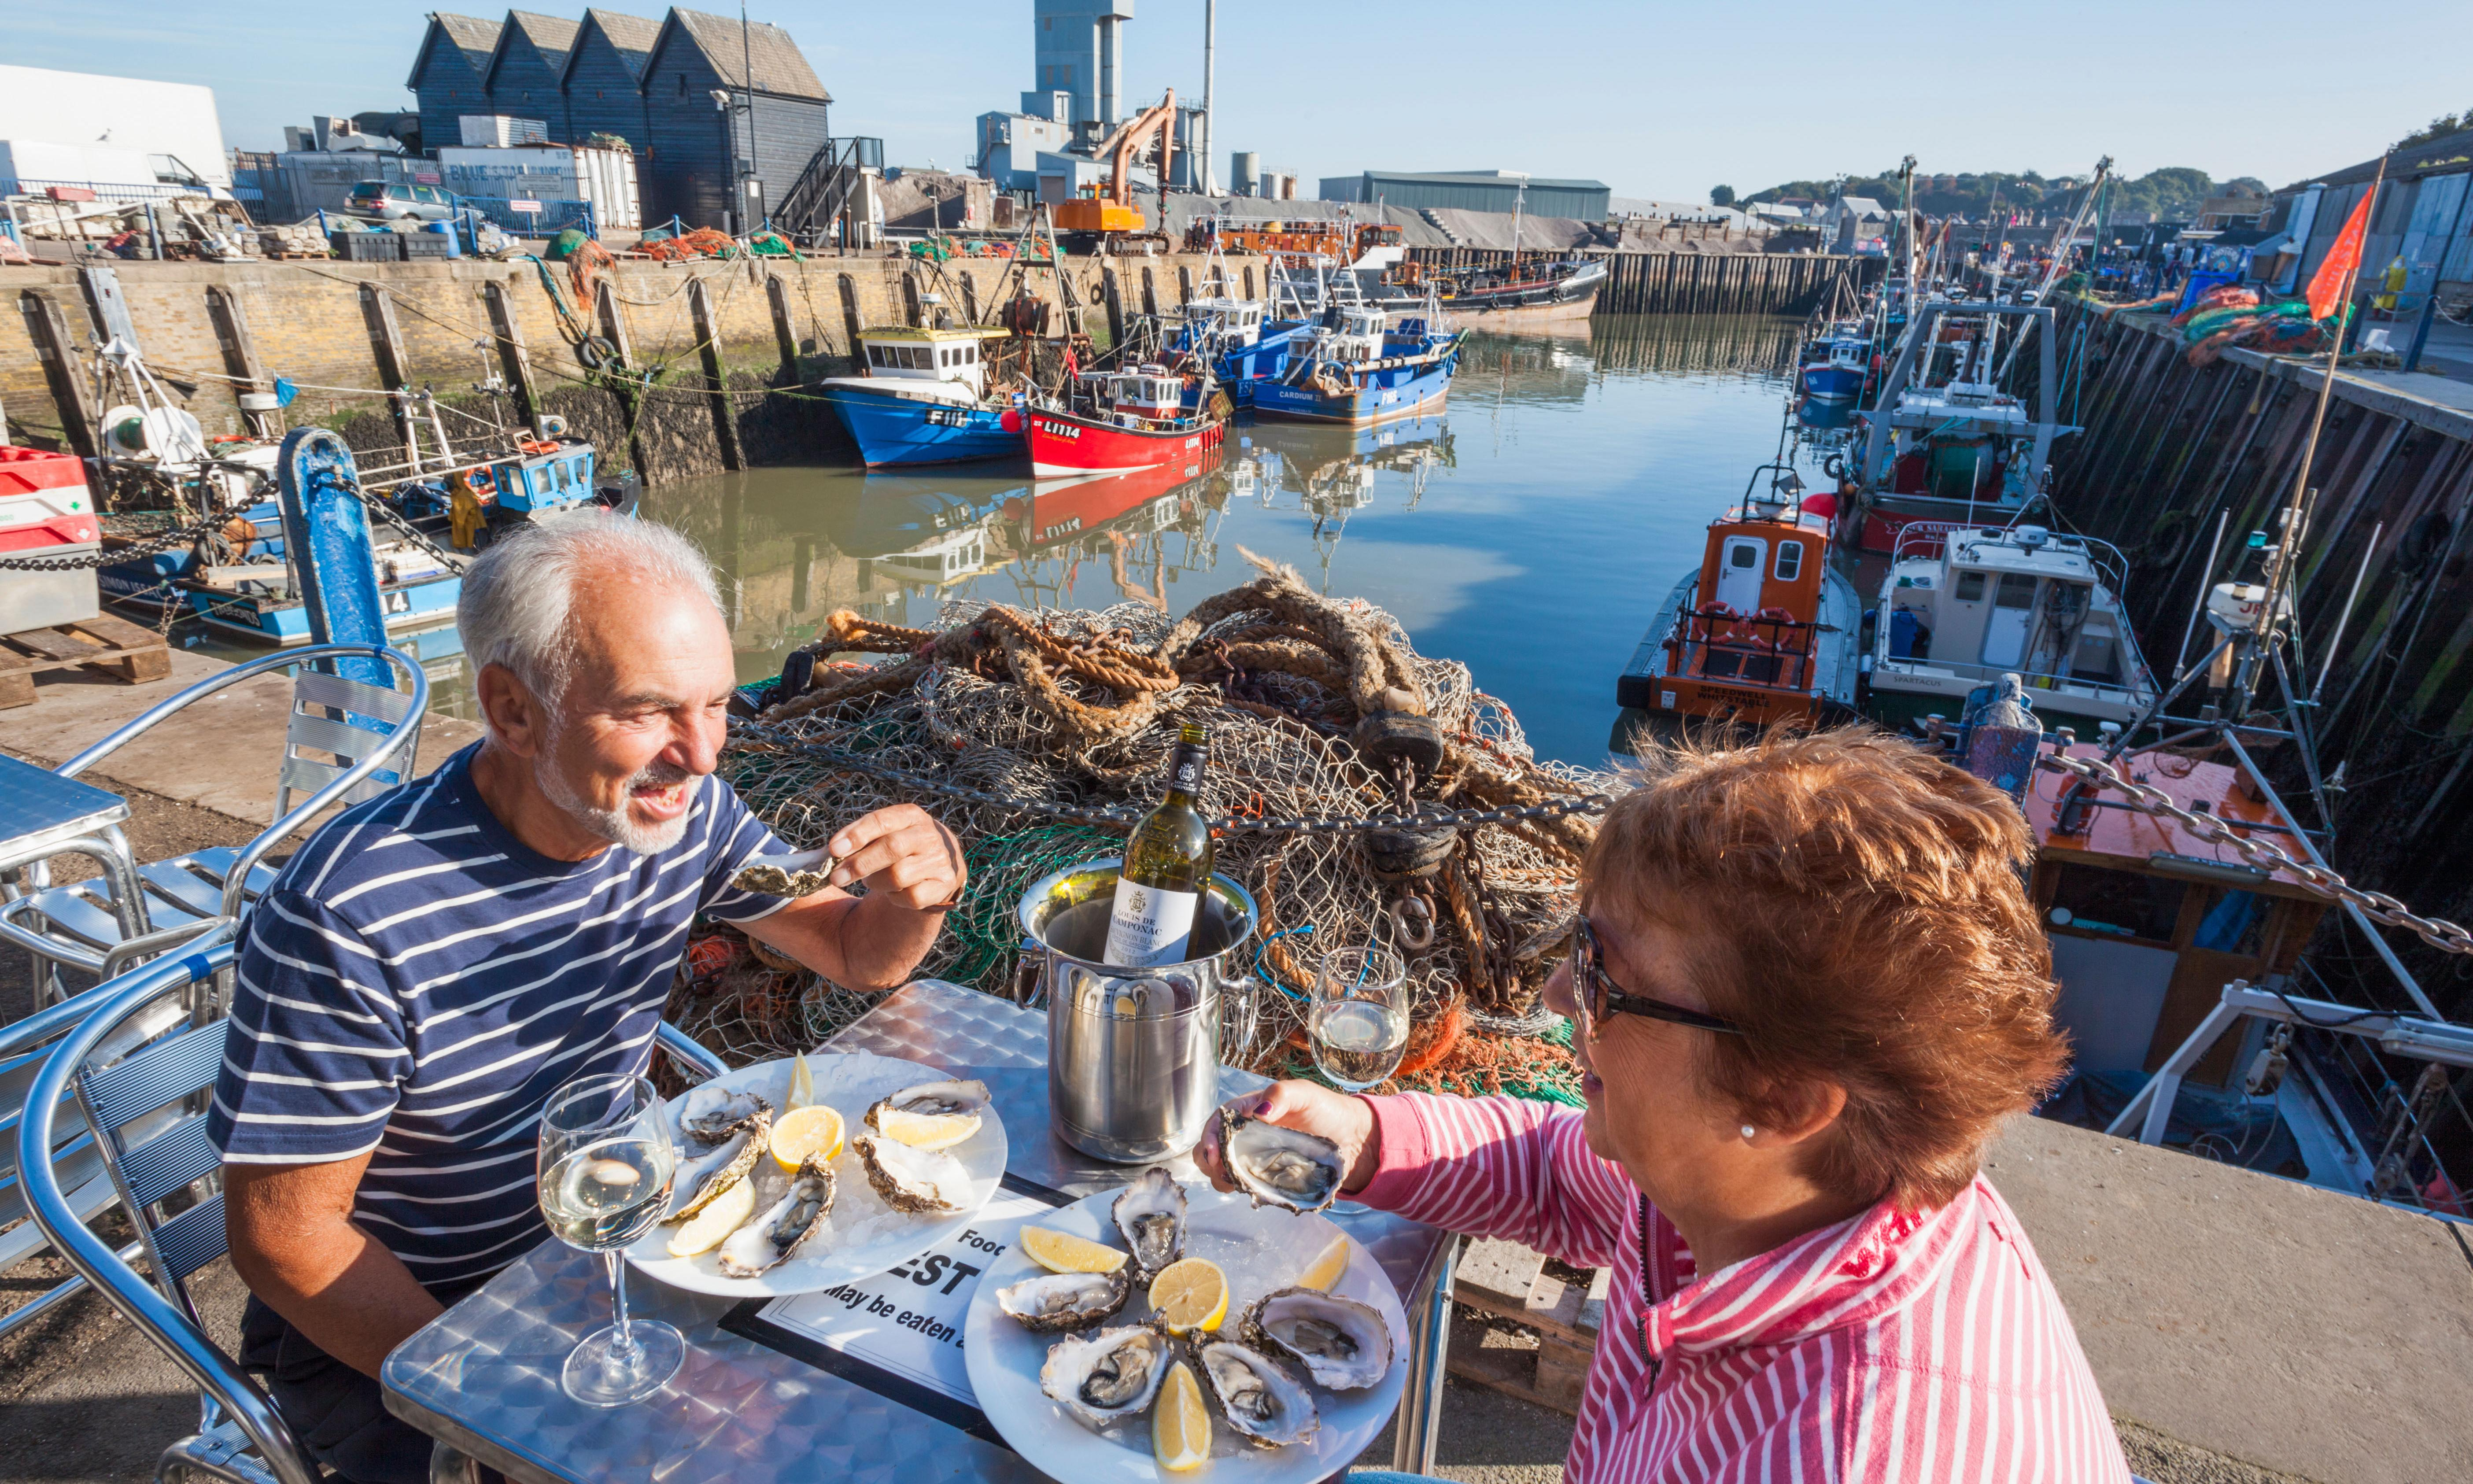 Trouble in Oysteropolis: Whitstable in uproar over booming fisheries trade